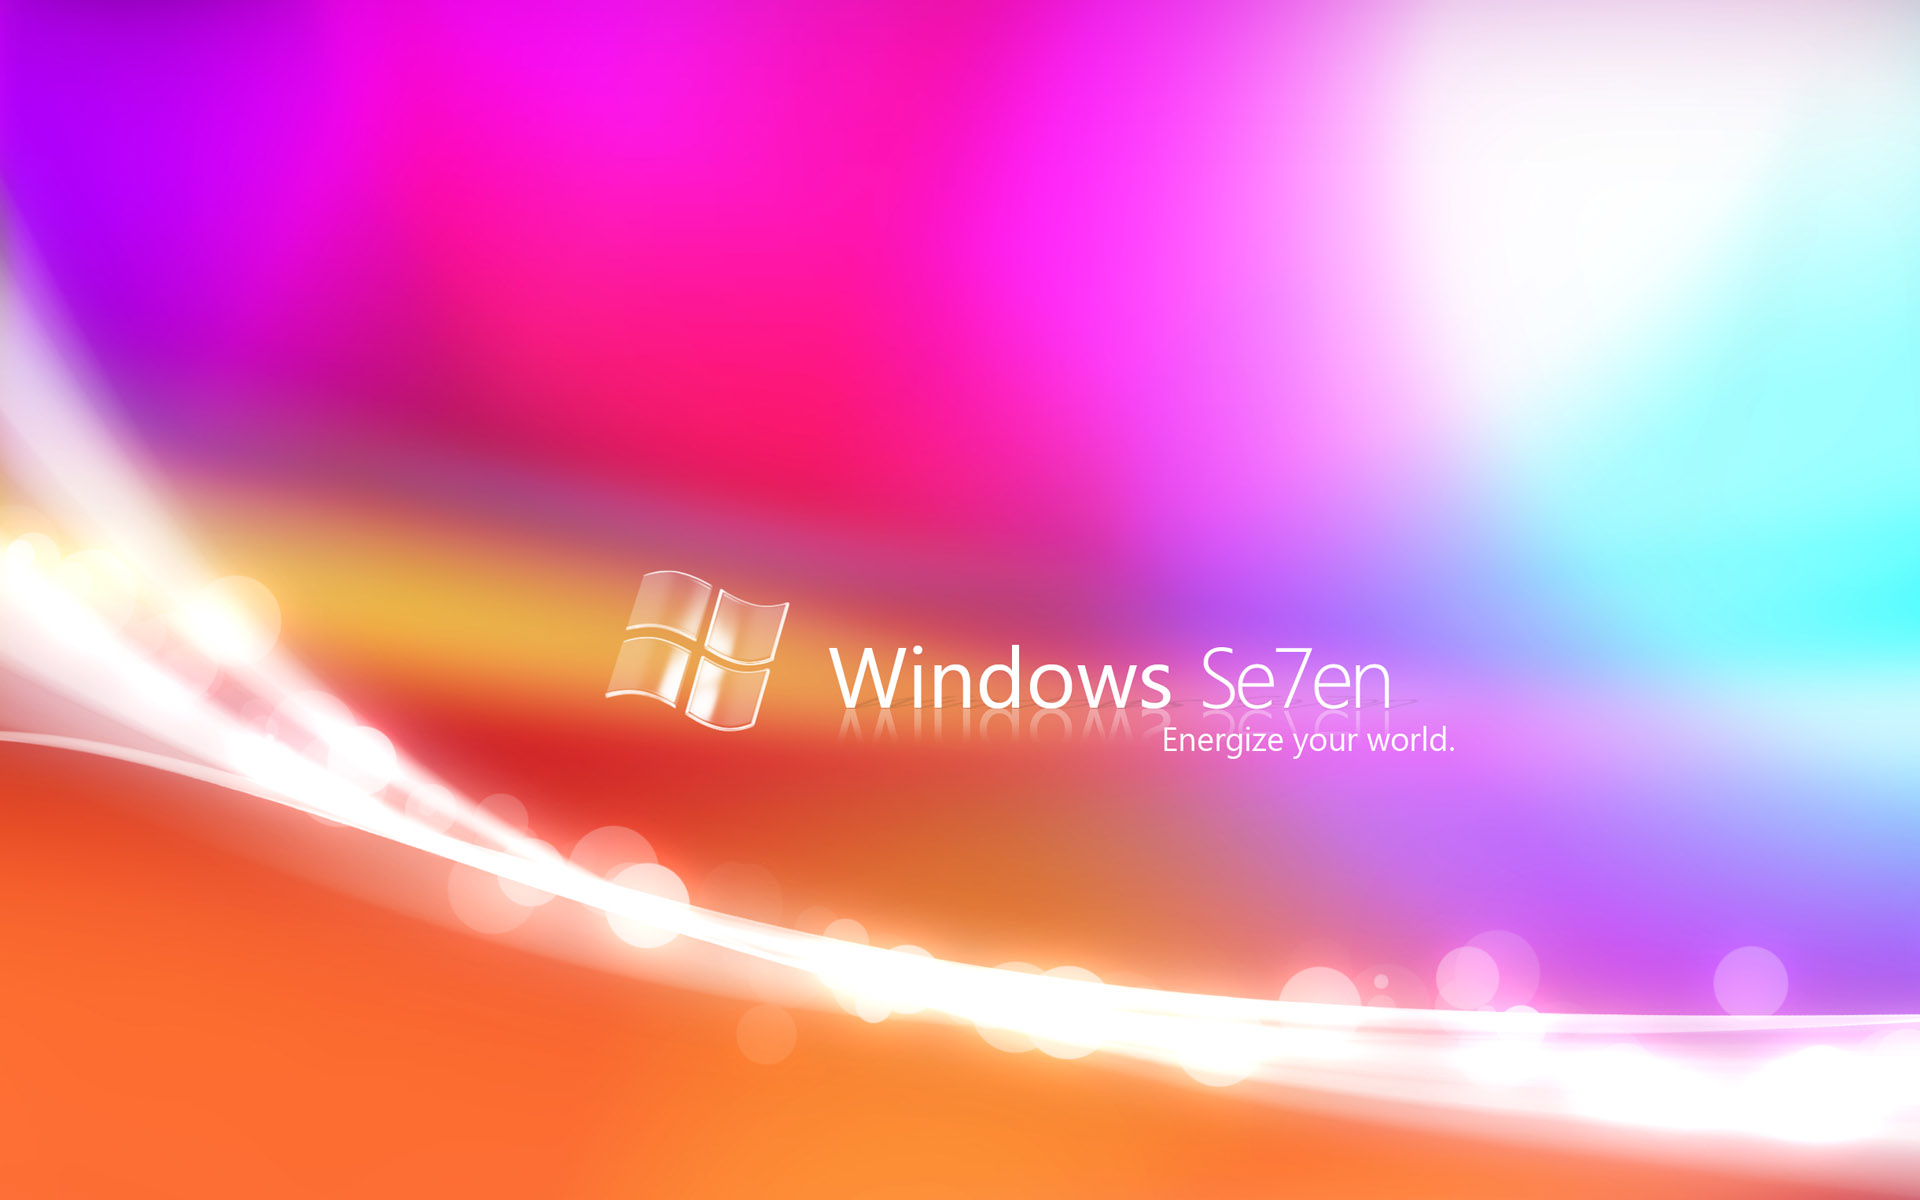 Windows 7 Abstract775991694 - Windows 7 Abstract - Windows, Vista, abstract